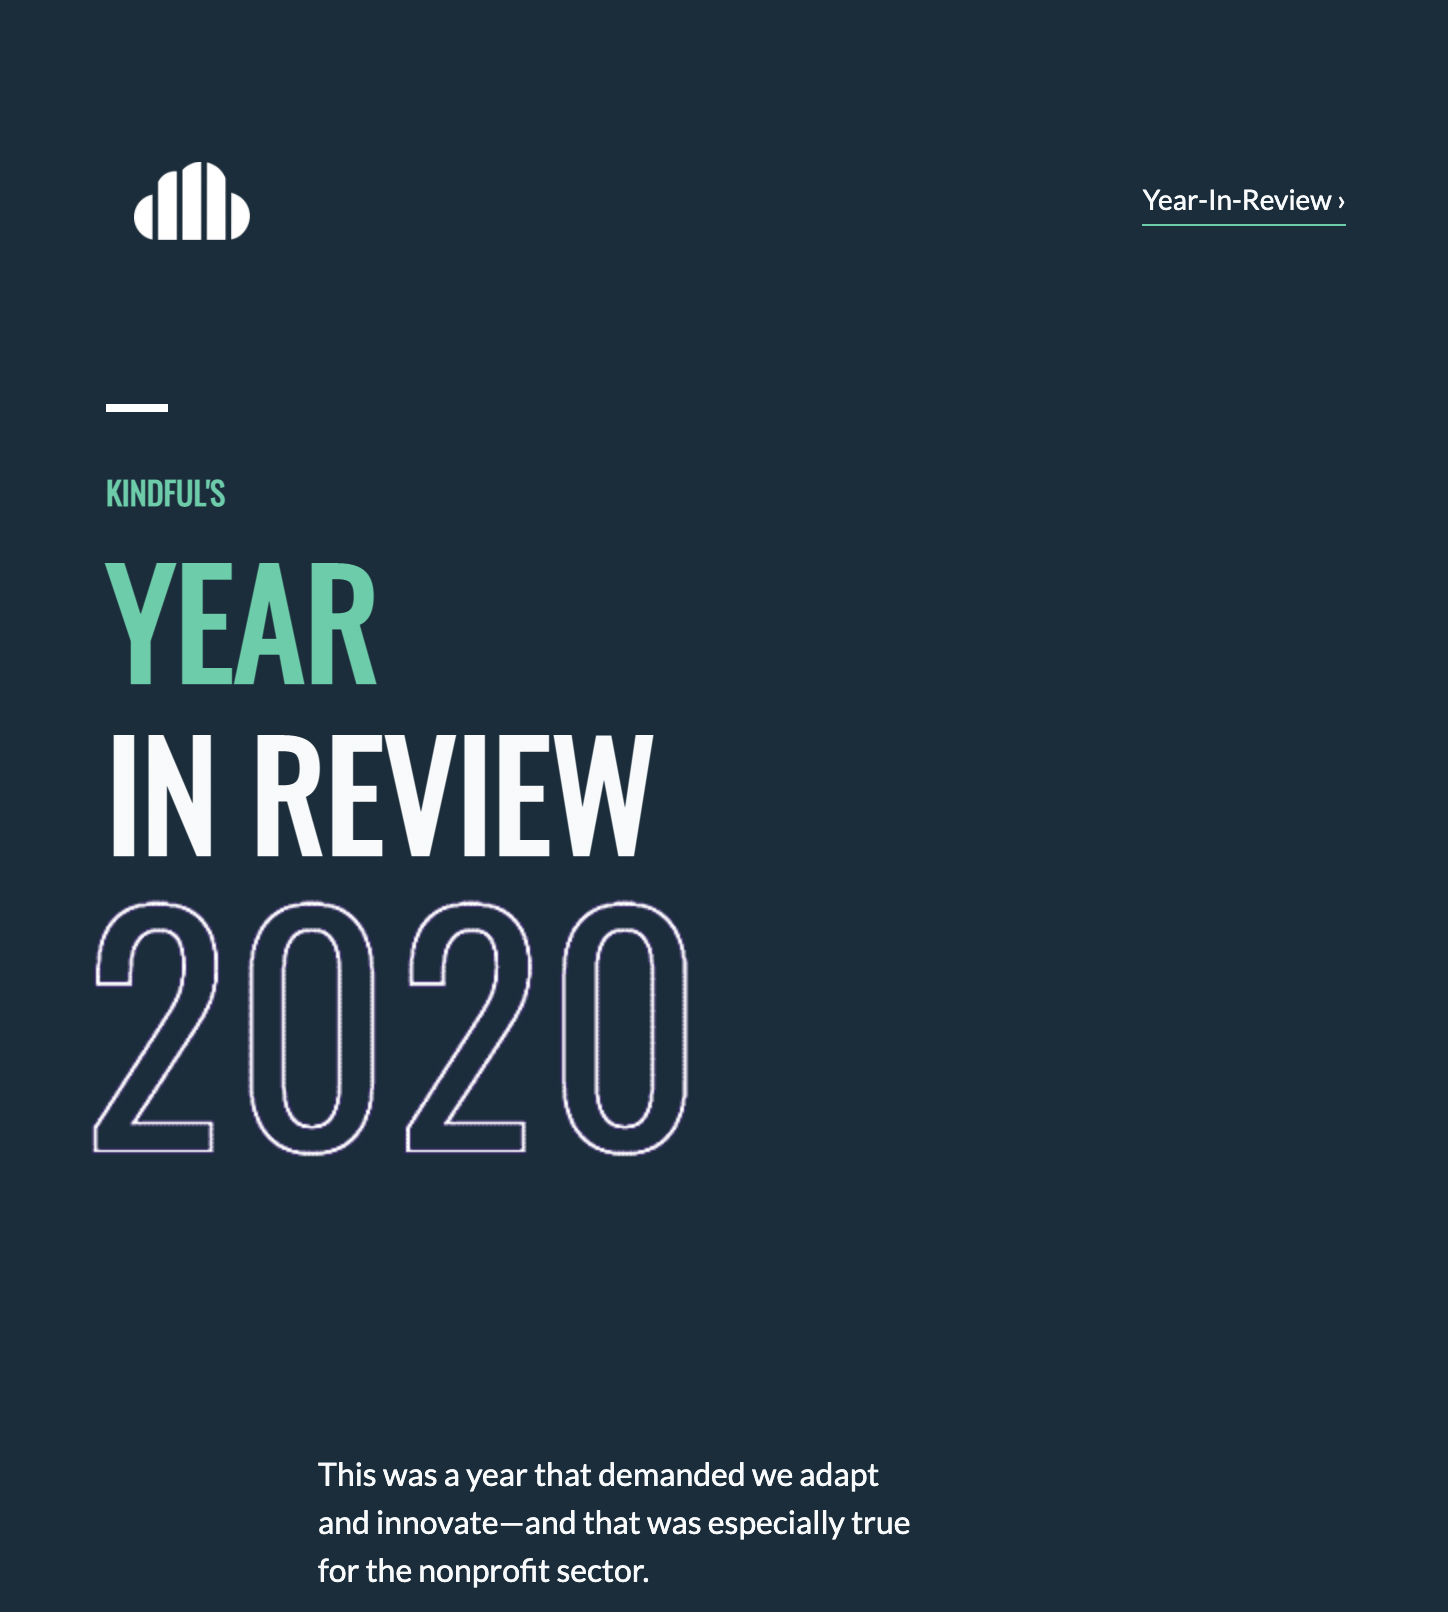 This is the full image of Kindful's 2020 Year-In-Review email, highlighting the stats from the above blog post.